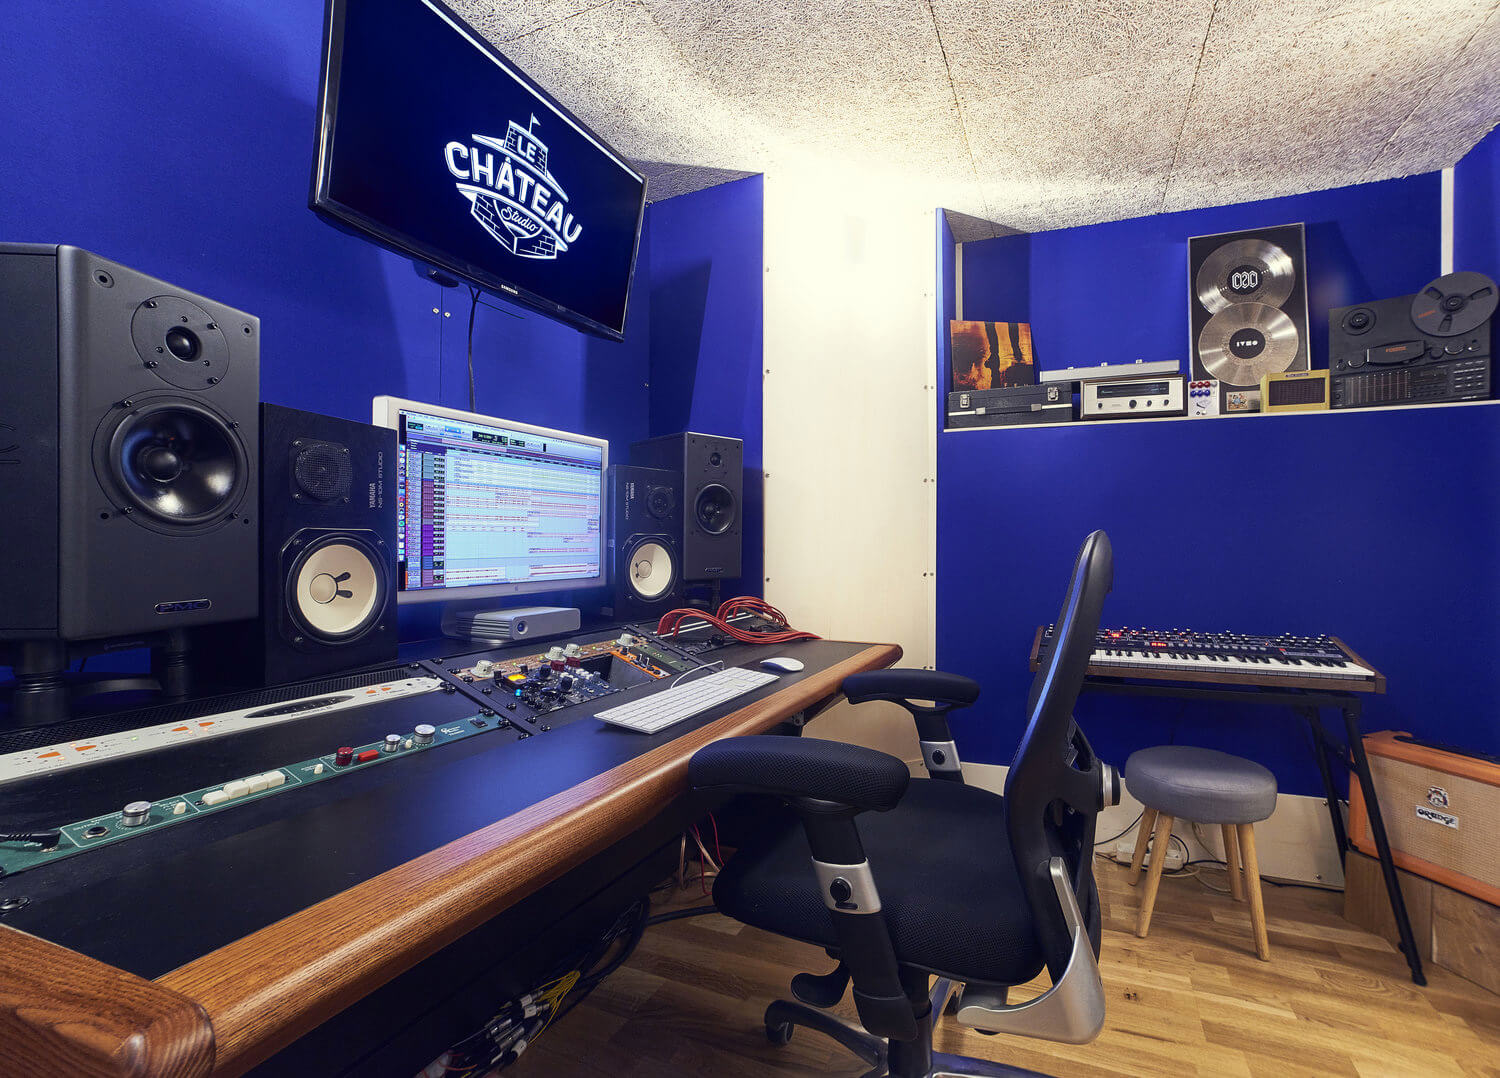 RED HOUSE_Le château studio 2.jpg